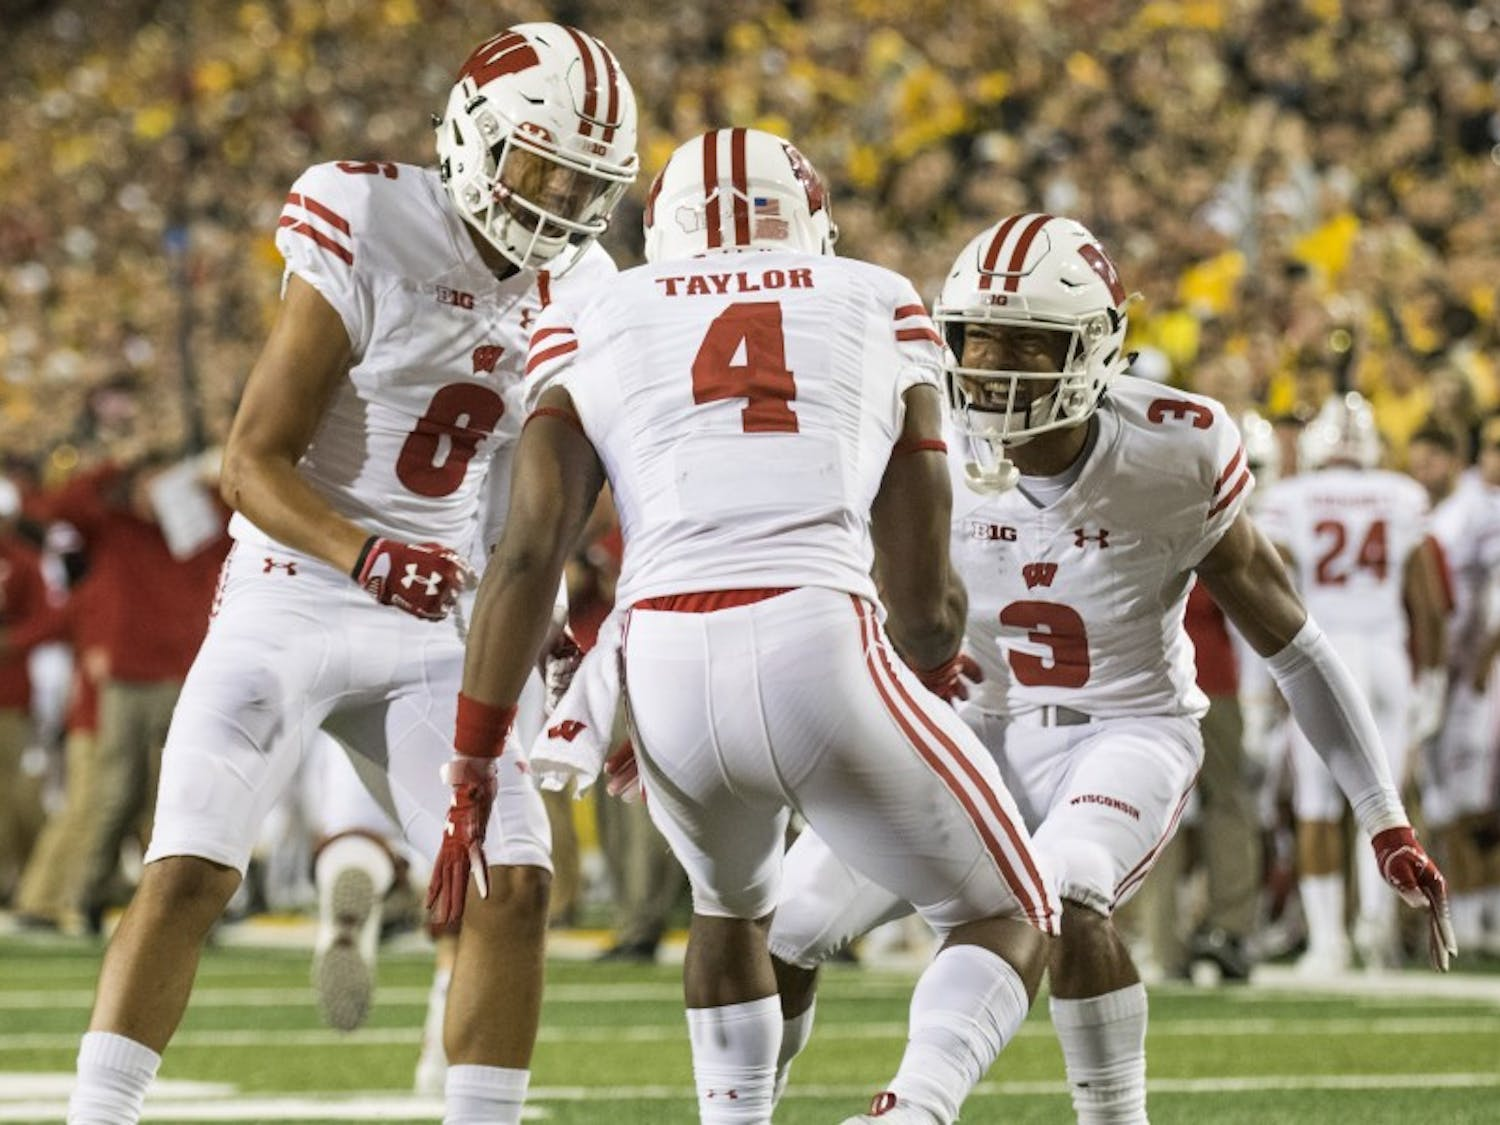 A.J. Taylor, Quintez Cephus, Danny Davis and Kendric Pryor make up one of the most talented receiving groups the Badgers have seen in years, and round out the offense around star running back Jonathan Taylor.